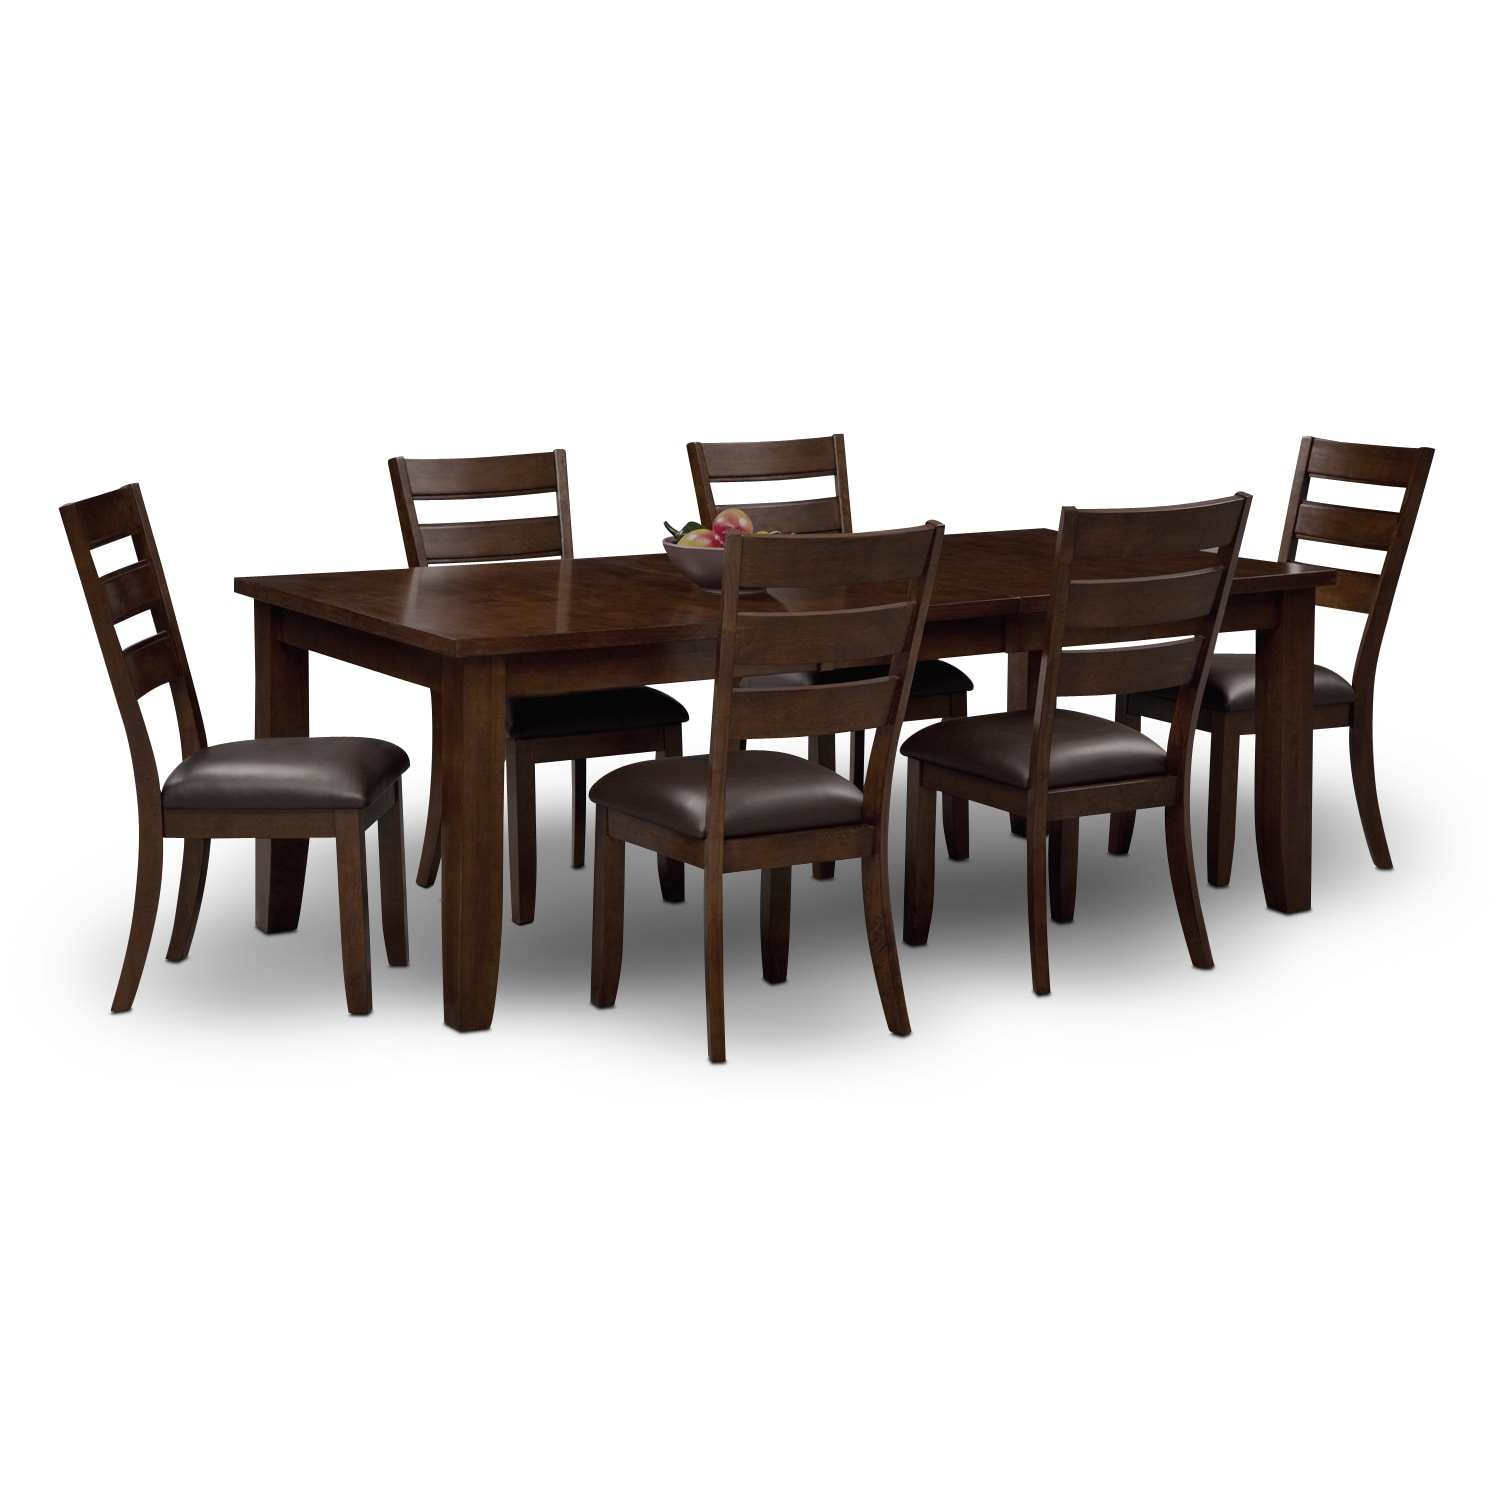 Rooms To Go Dining Room Set: Abaco Table And 6 Chairs - Brown